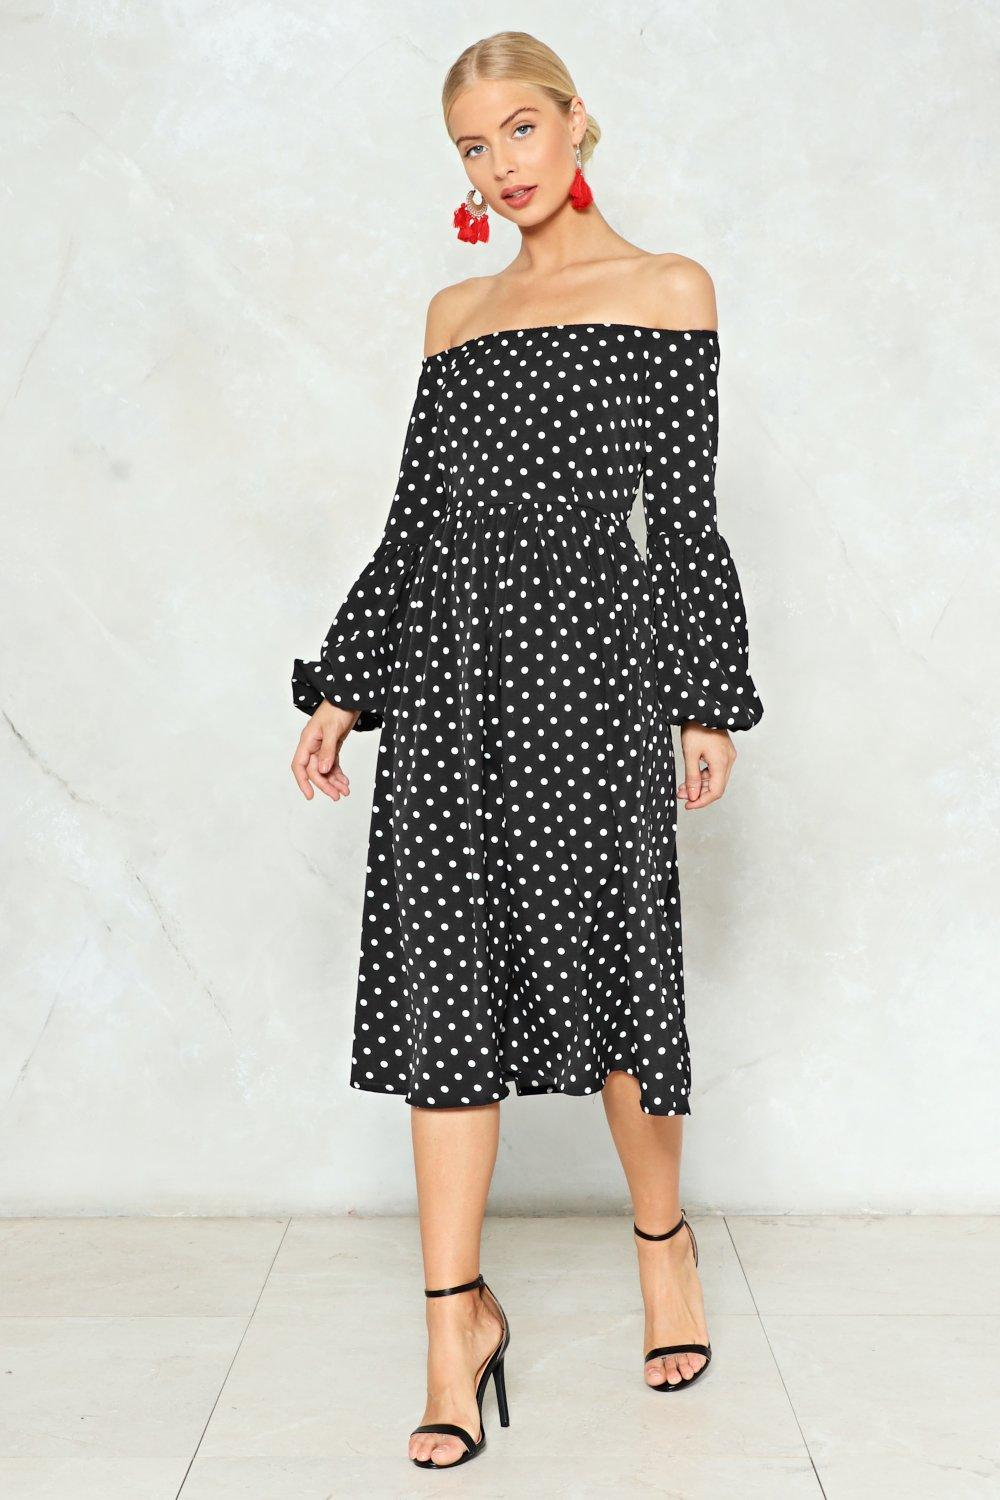 6b5f2d3f001 Womens Black Swing in Our Direction Polka Dot Dress